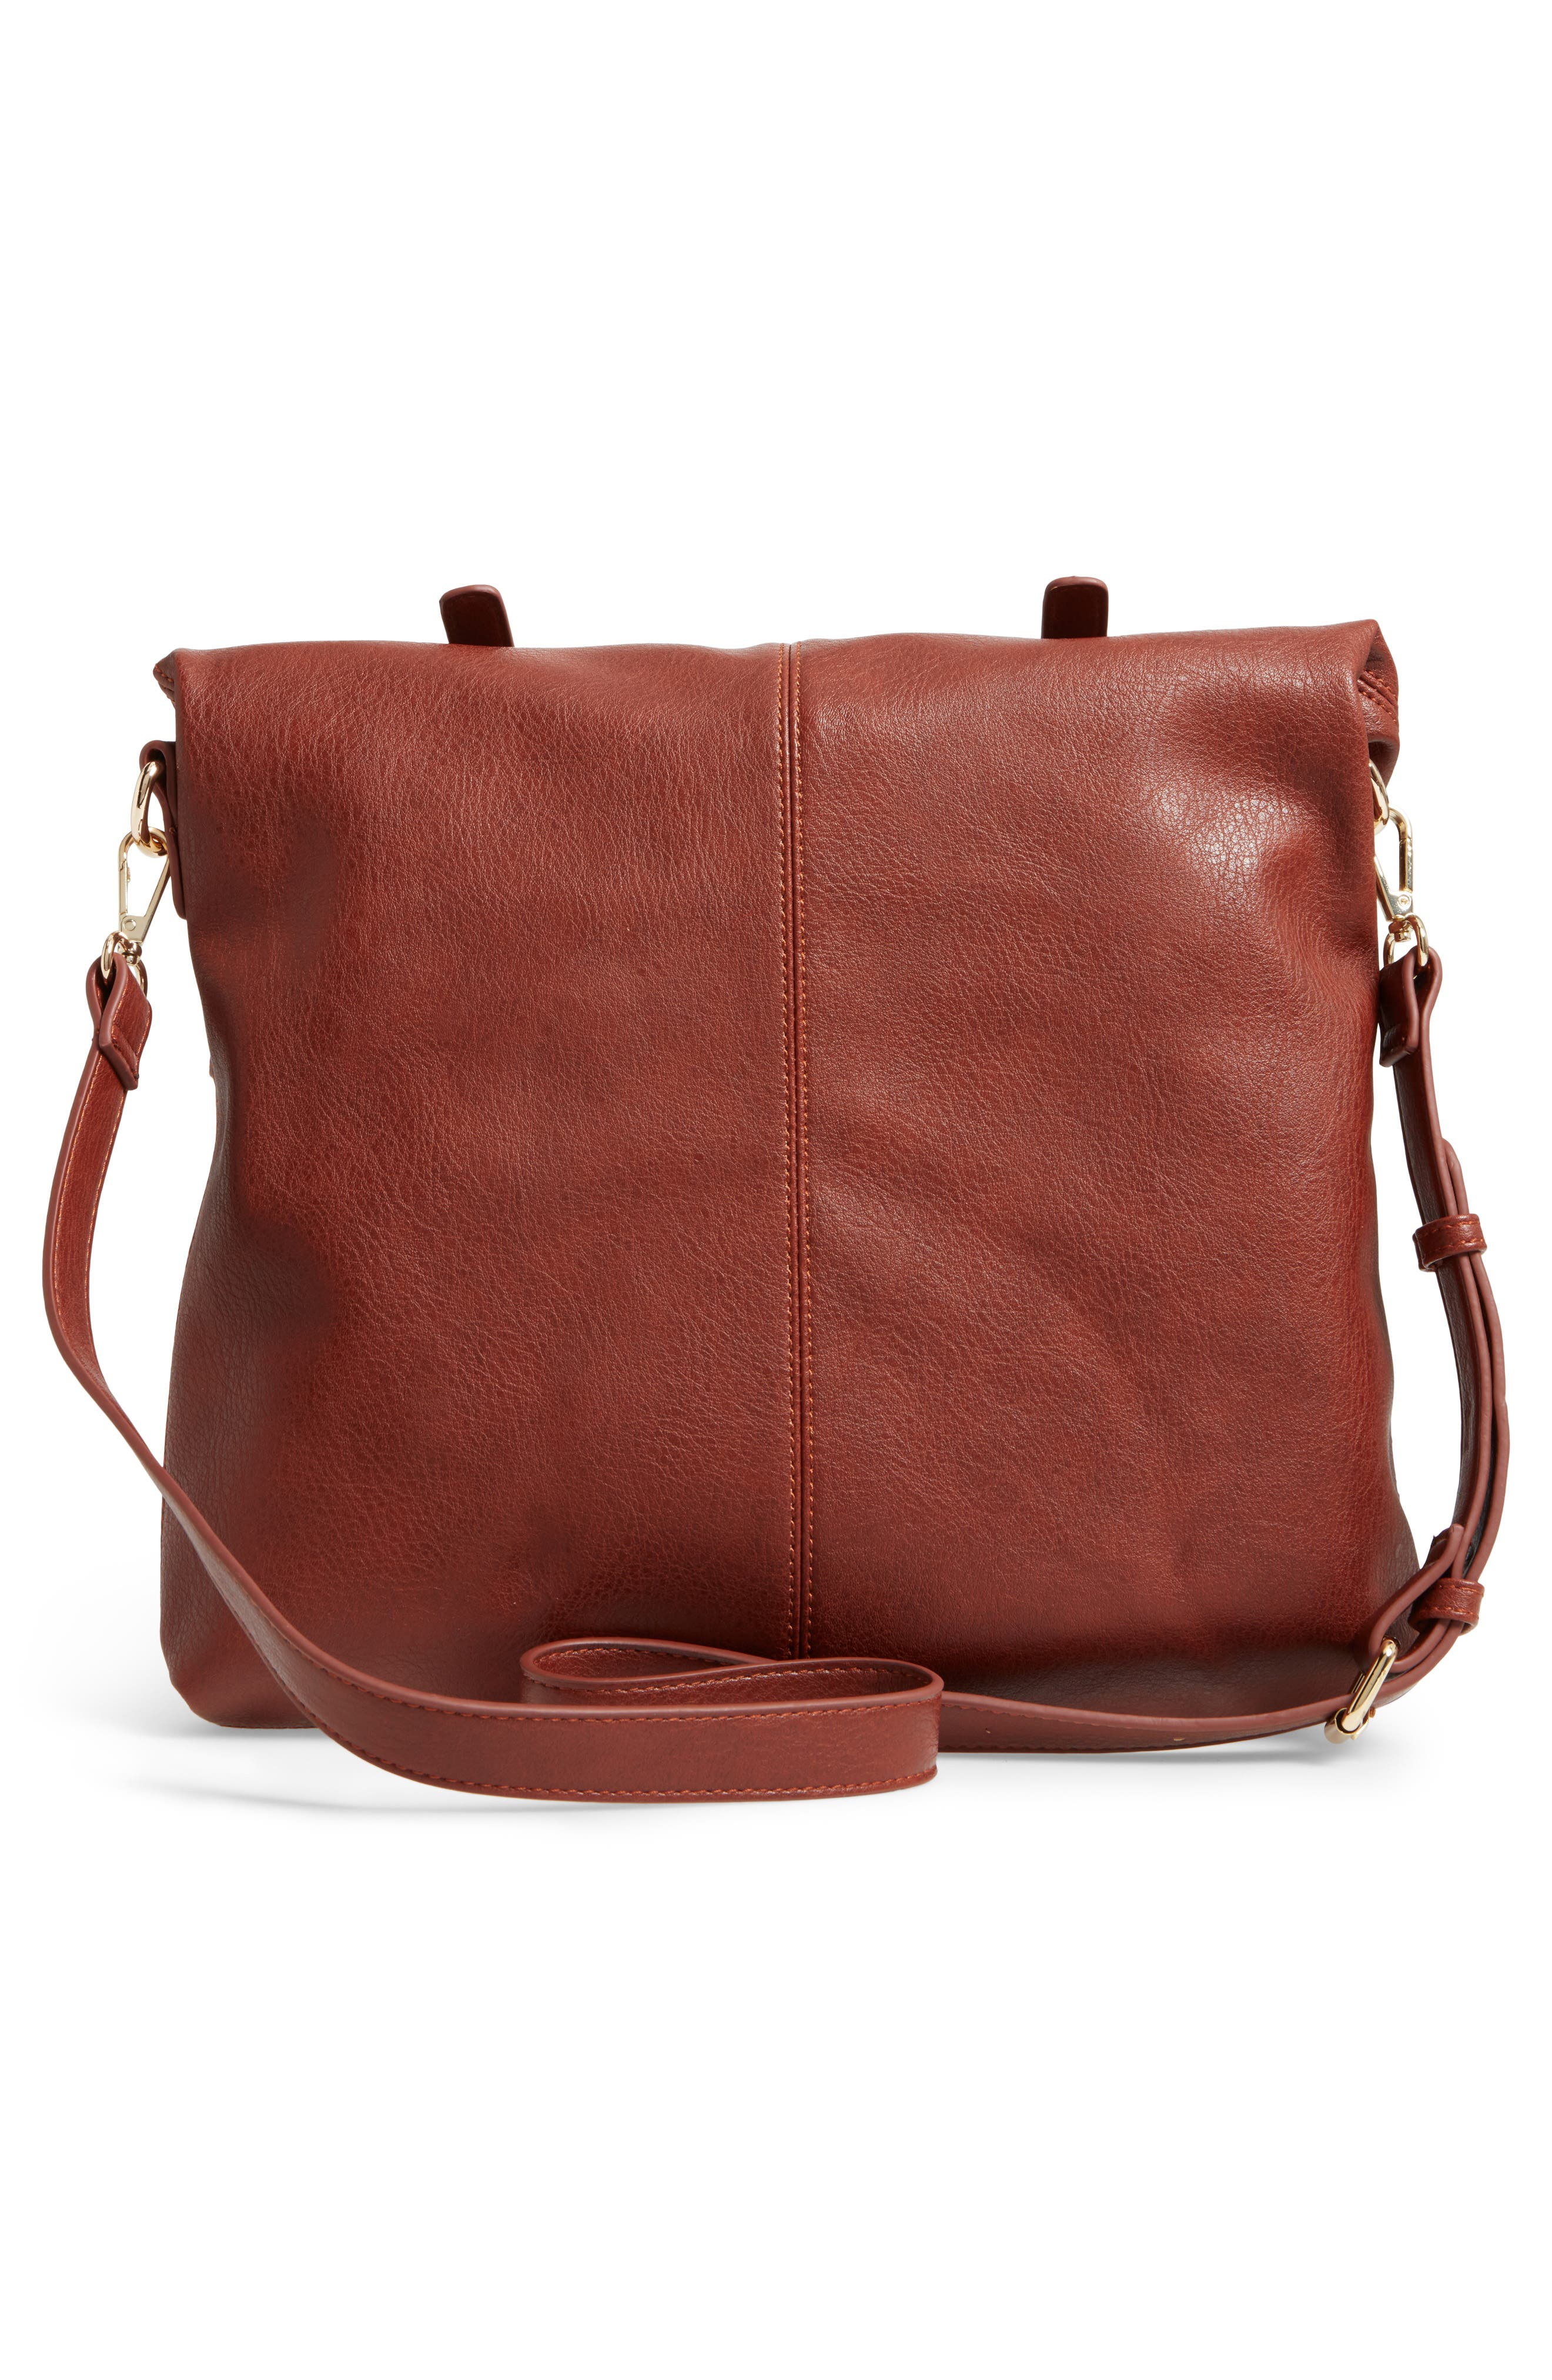 SOLE SOCIETY, Charlie Foldover Tote, Alternate thumbnail 3, color, 201